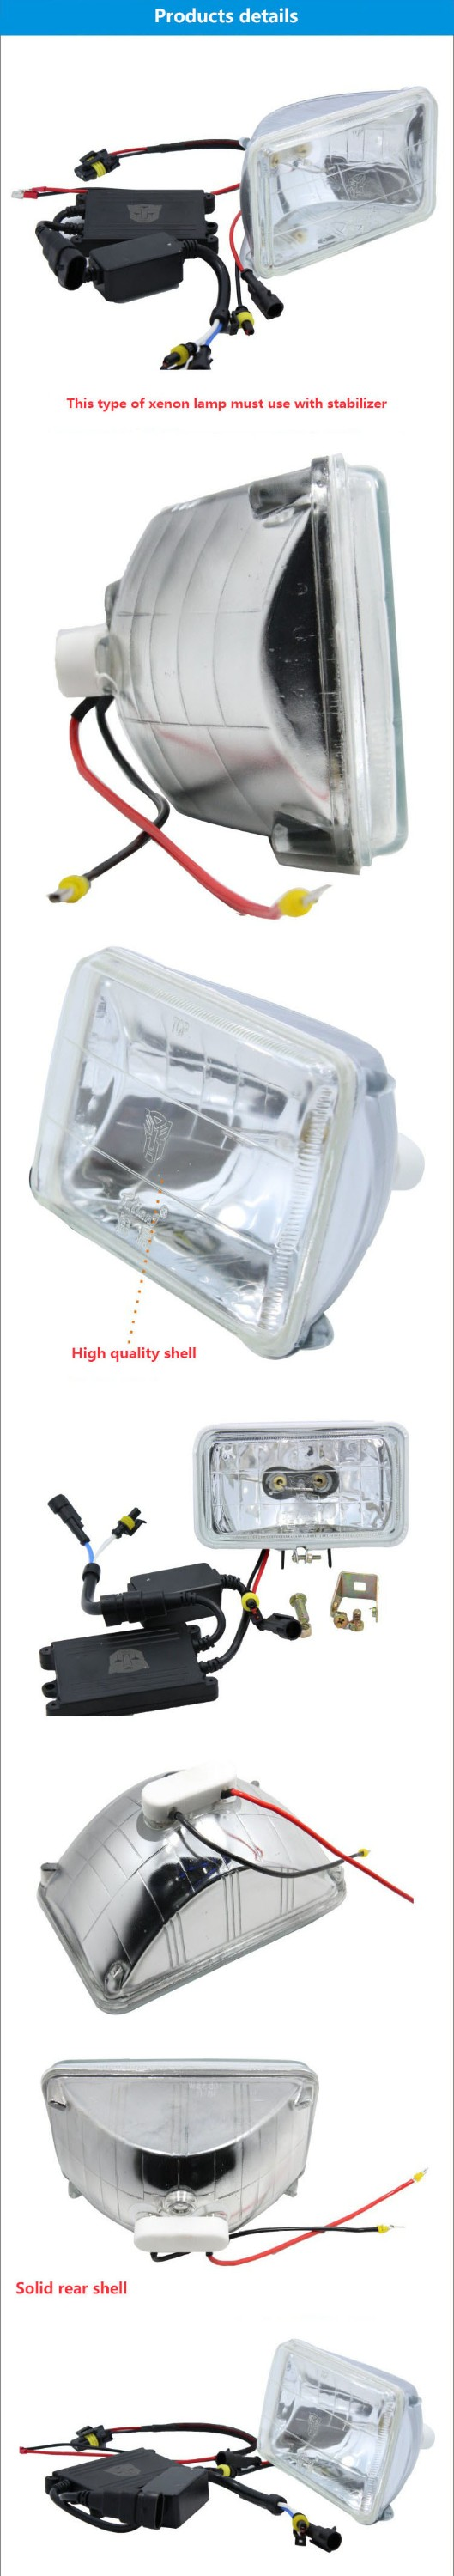 12v 24v universal vw jetta projector headlight